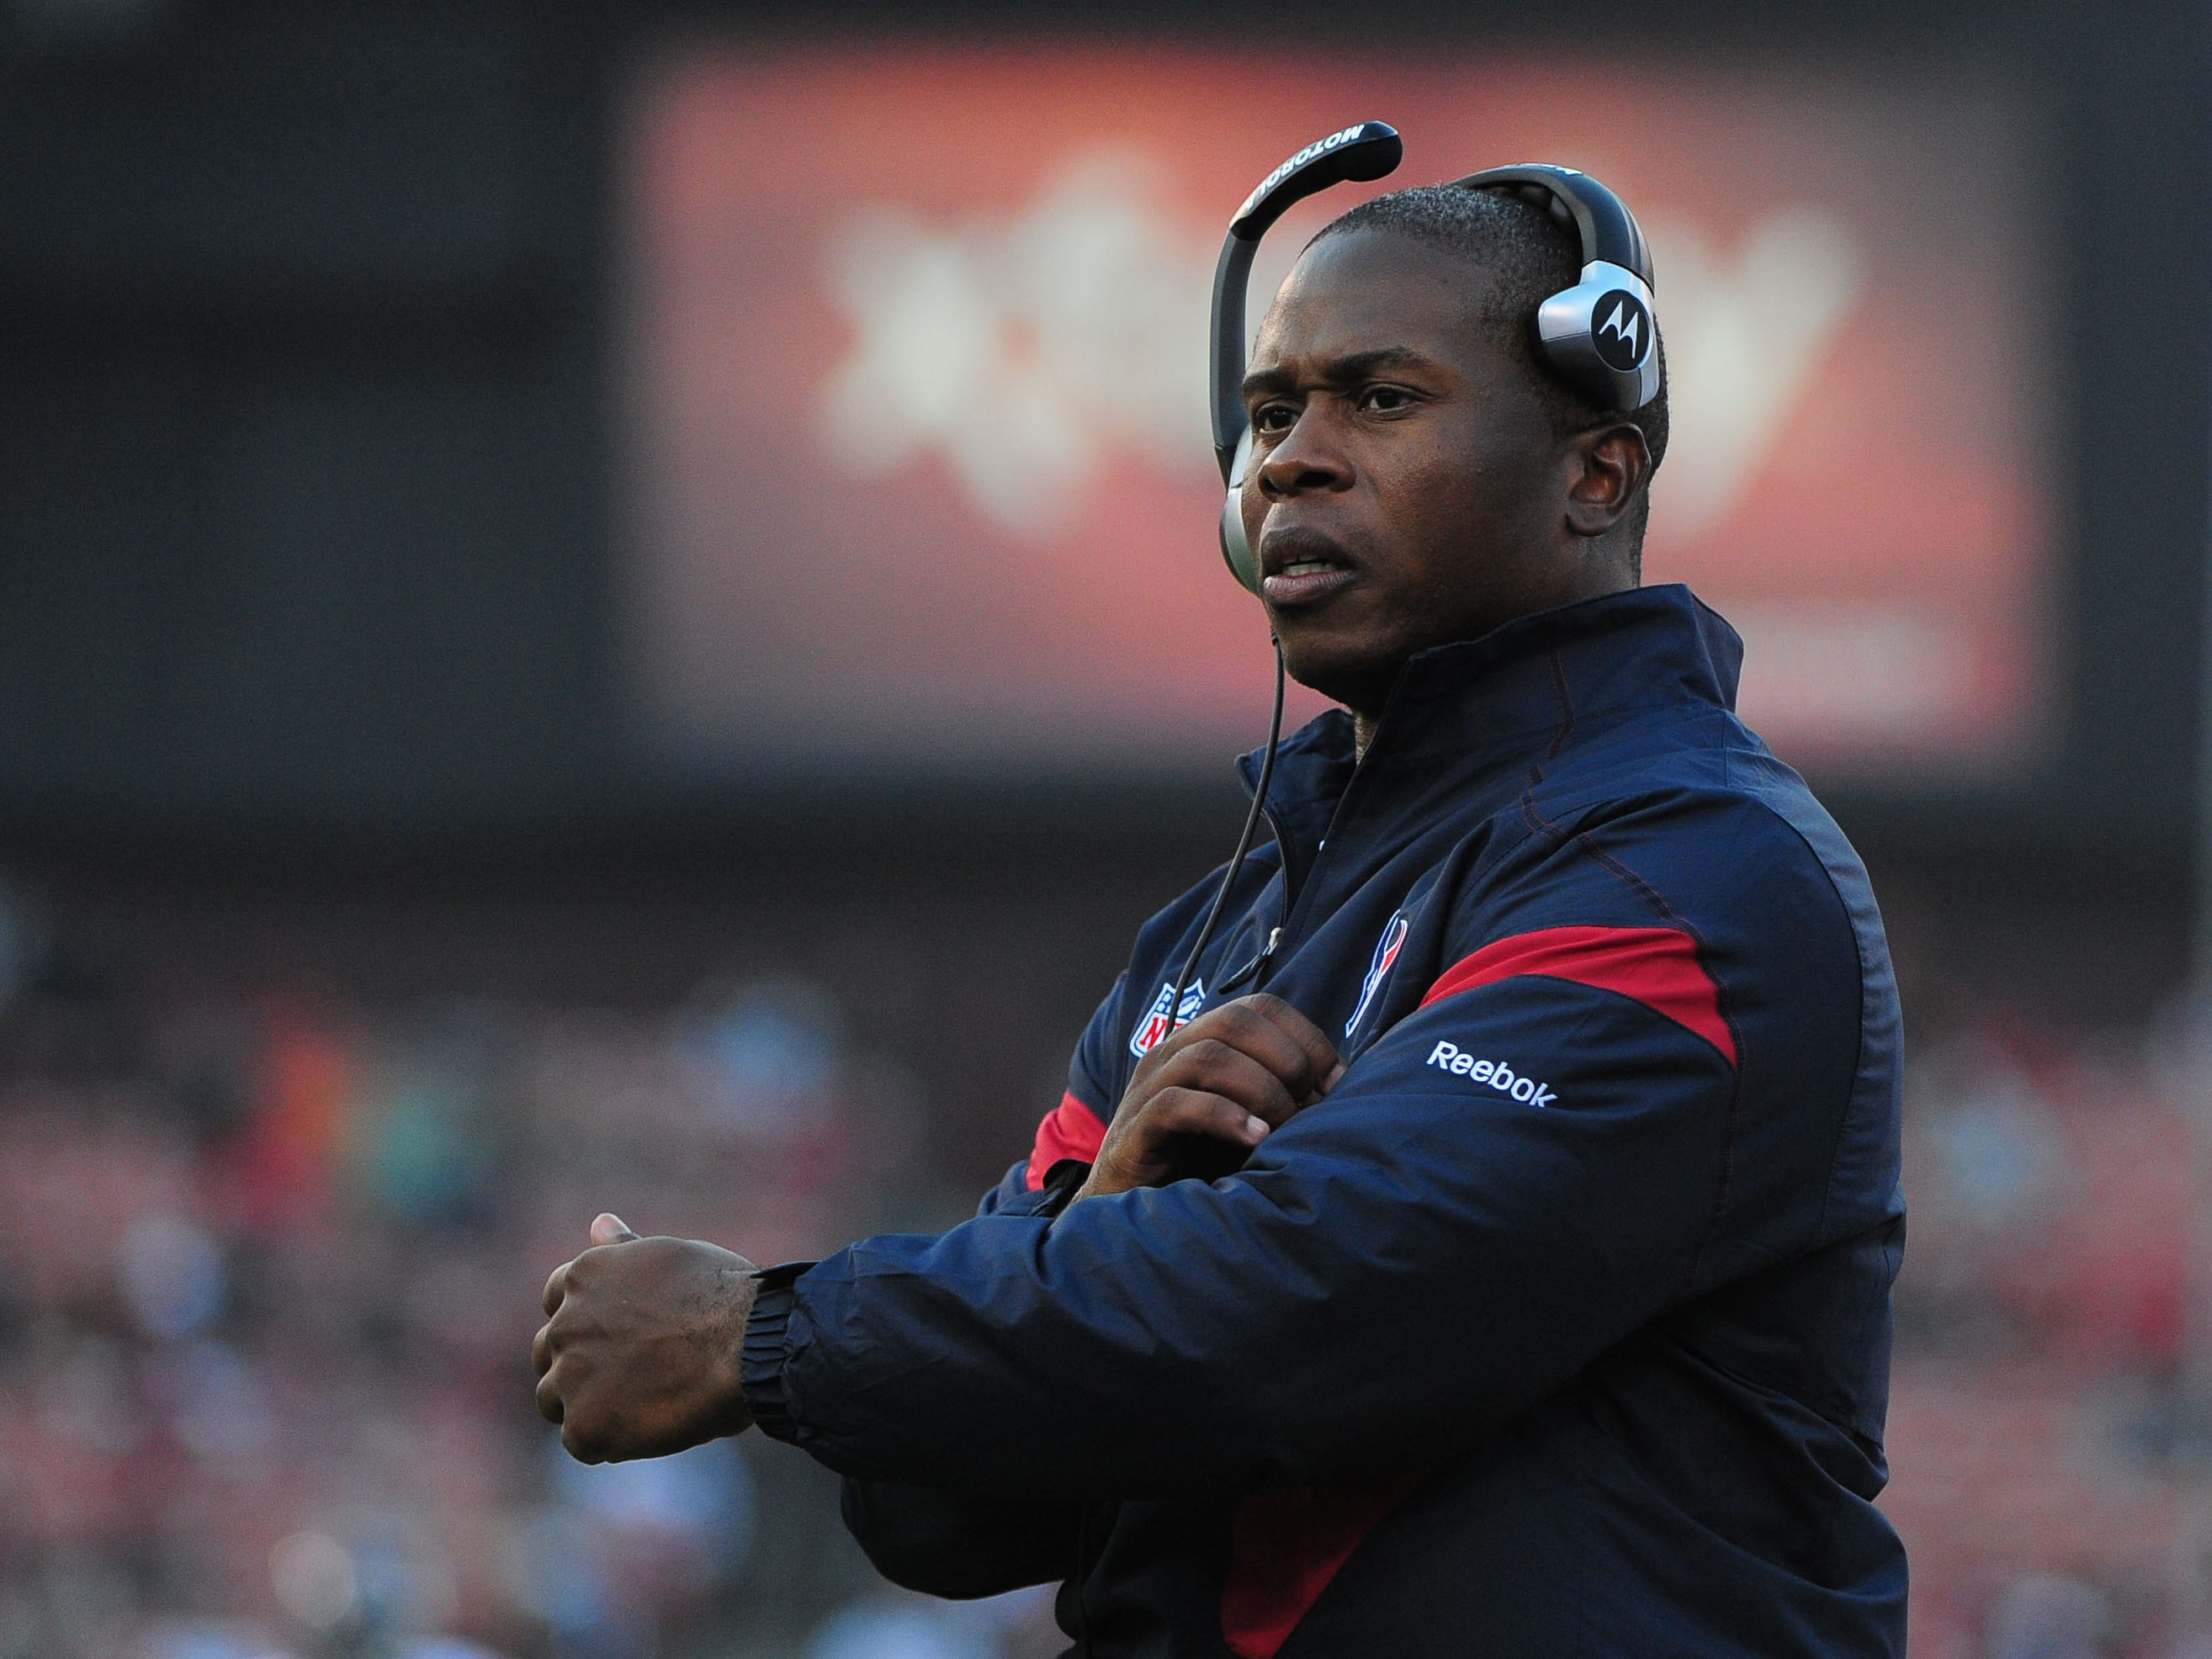 August 27, 2011; San Francisco, CA, USA; Houston Texans defensive backs coach Vance Joseph watches from the sidelines during the third quarter against the San Francisco 49ers at Candlestick Park. The Texans defeated the 49ers 30-7.